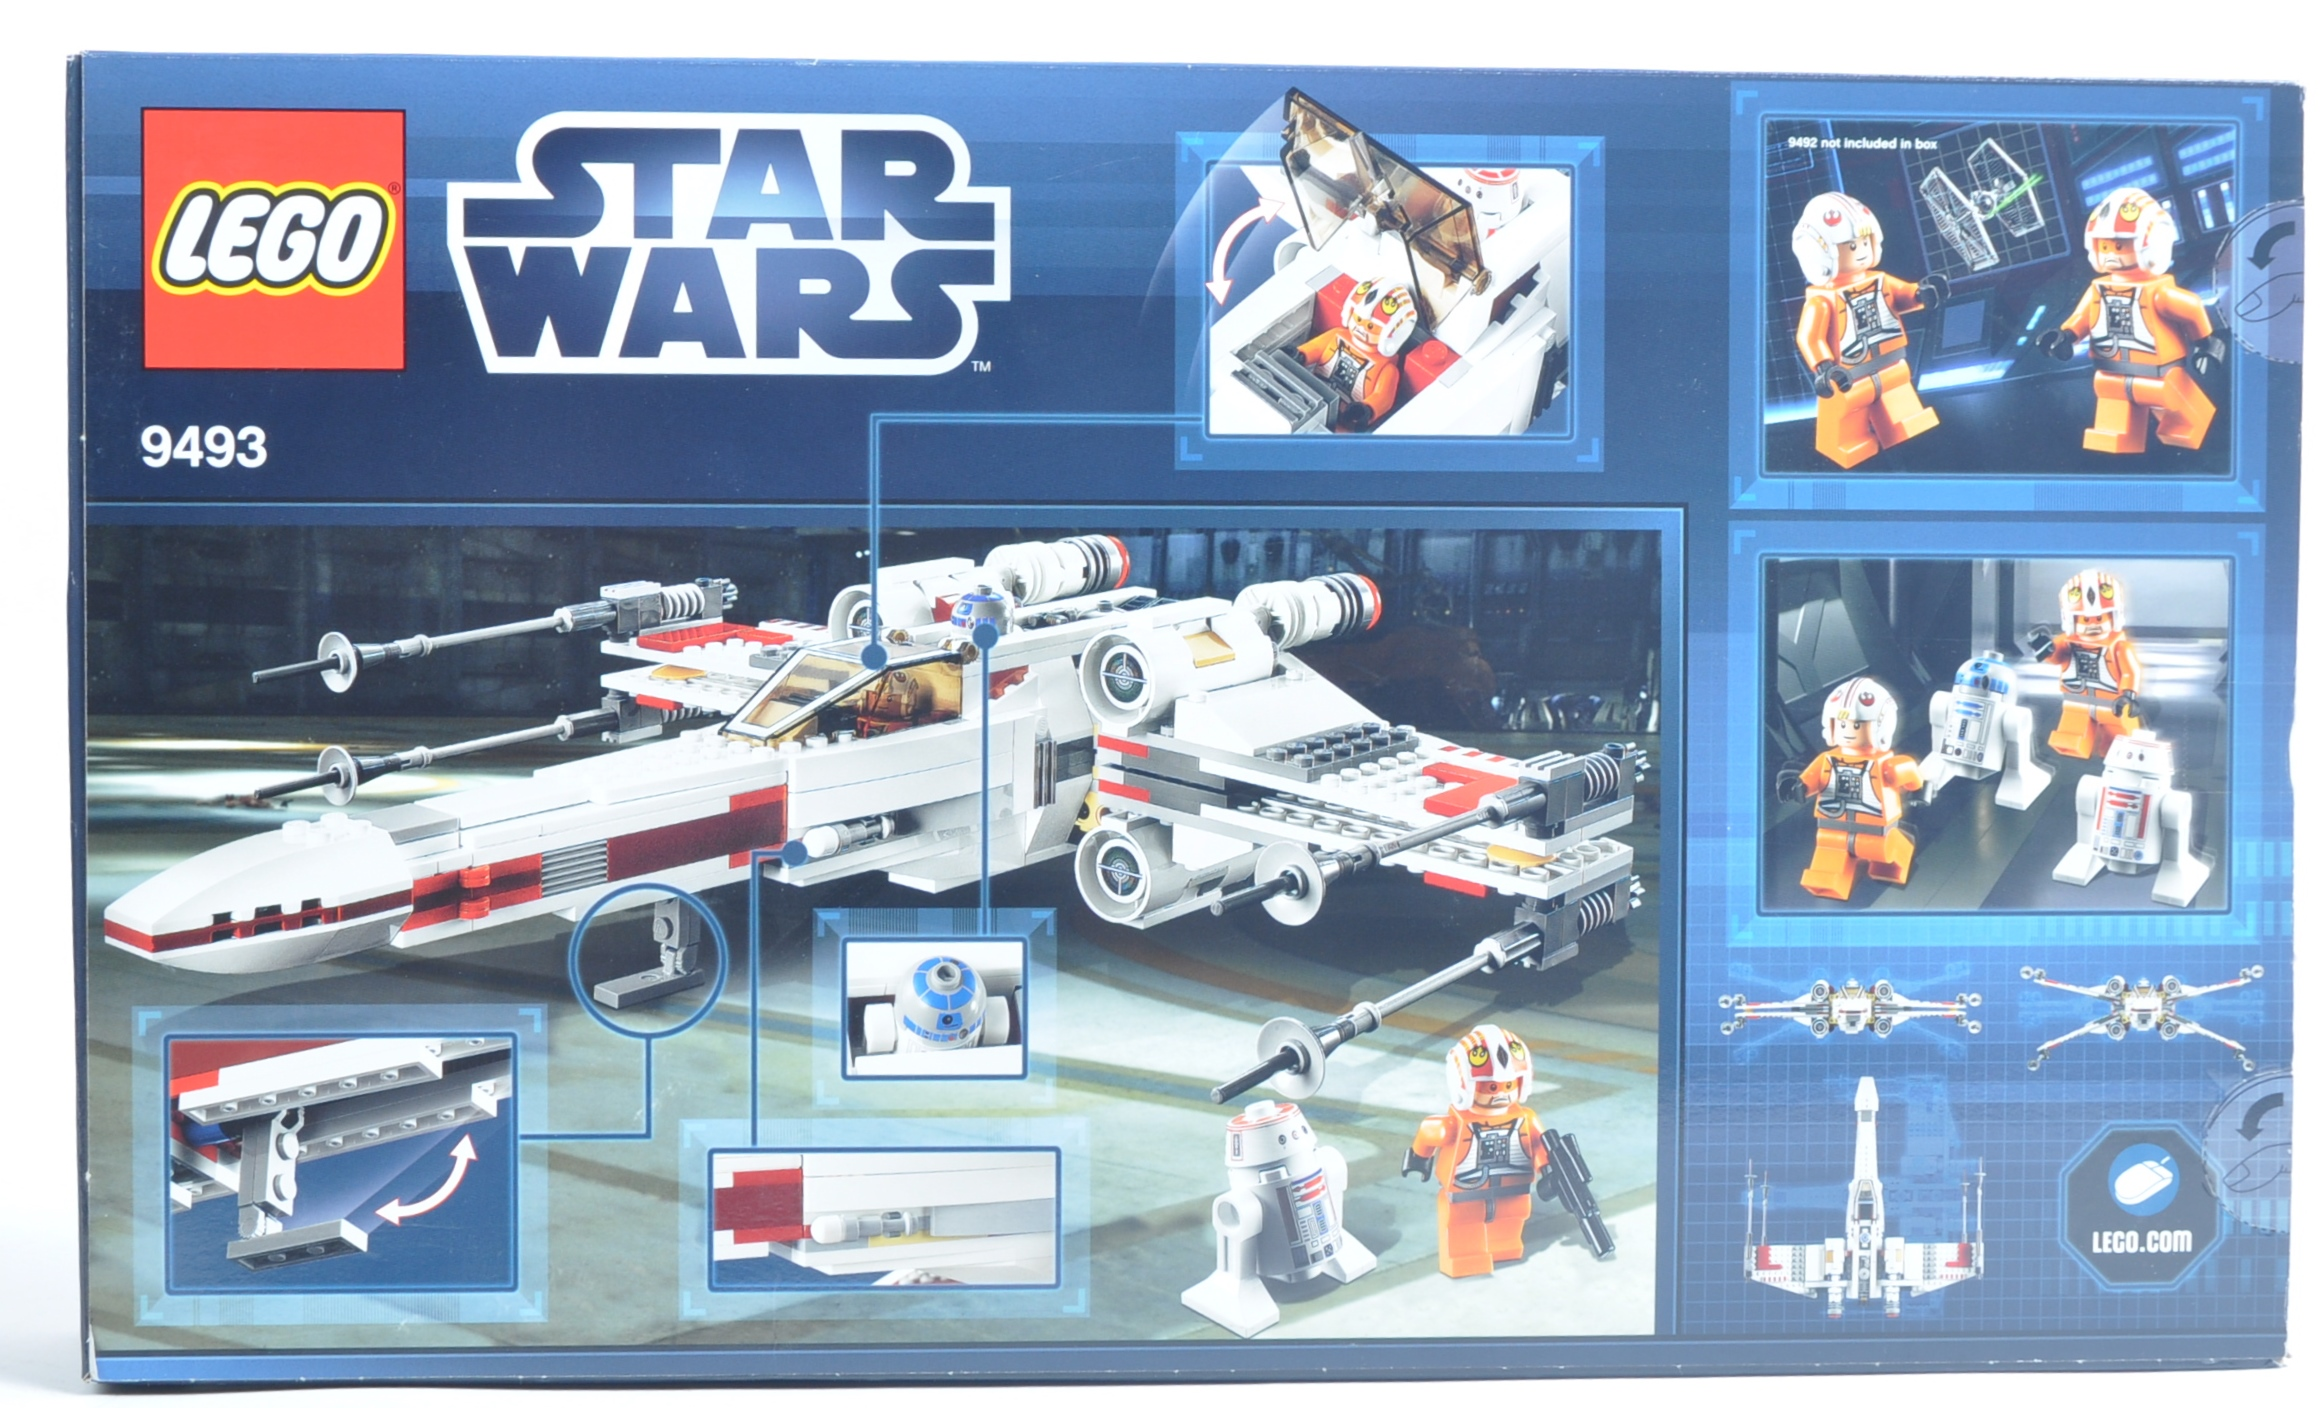 LEGO SET - LEGO STAR WARS - 9493 - X-WING STARFIGHTER - Image 2 of 4